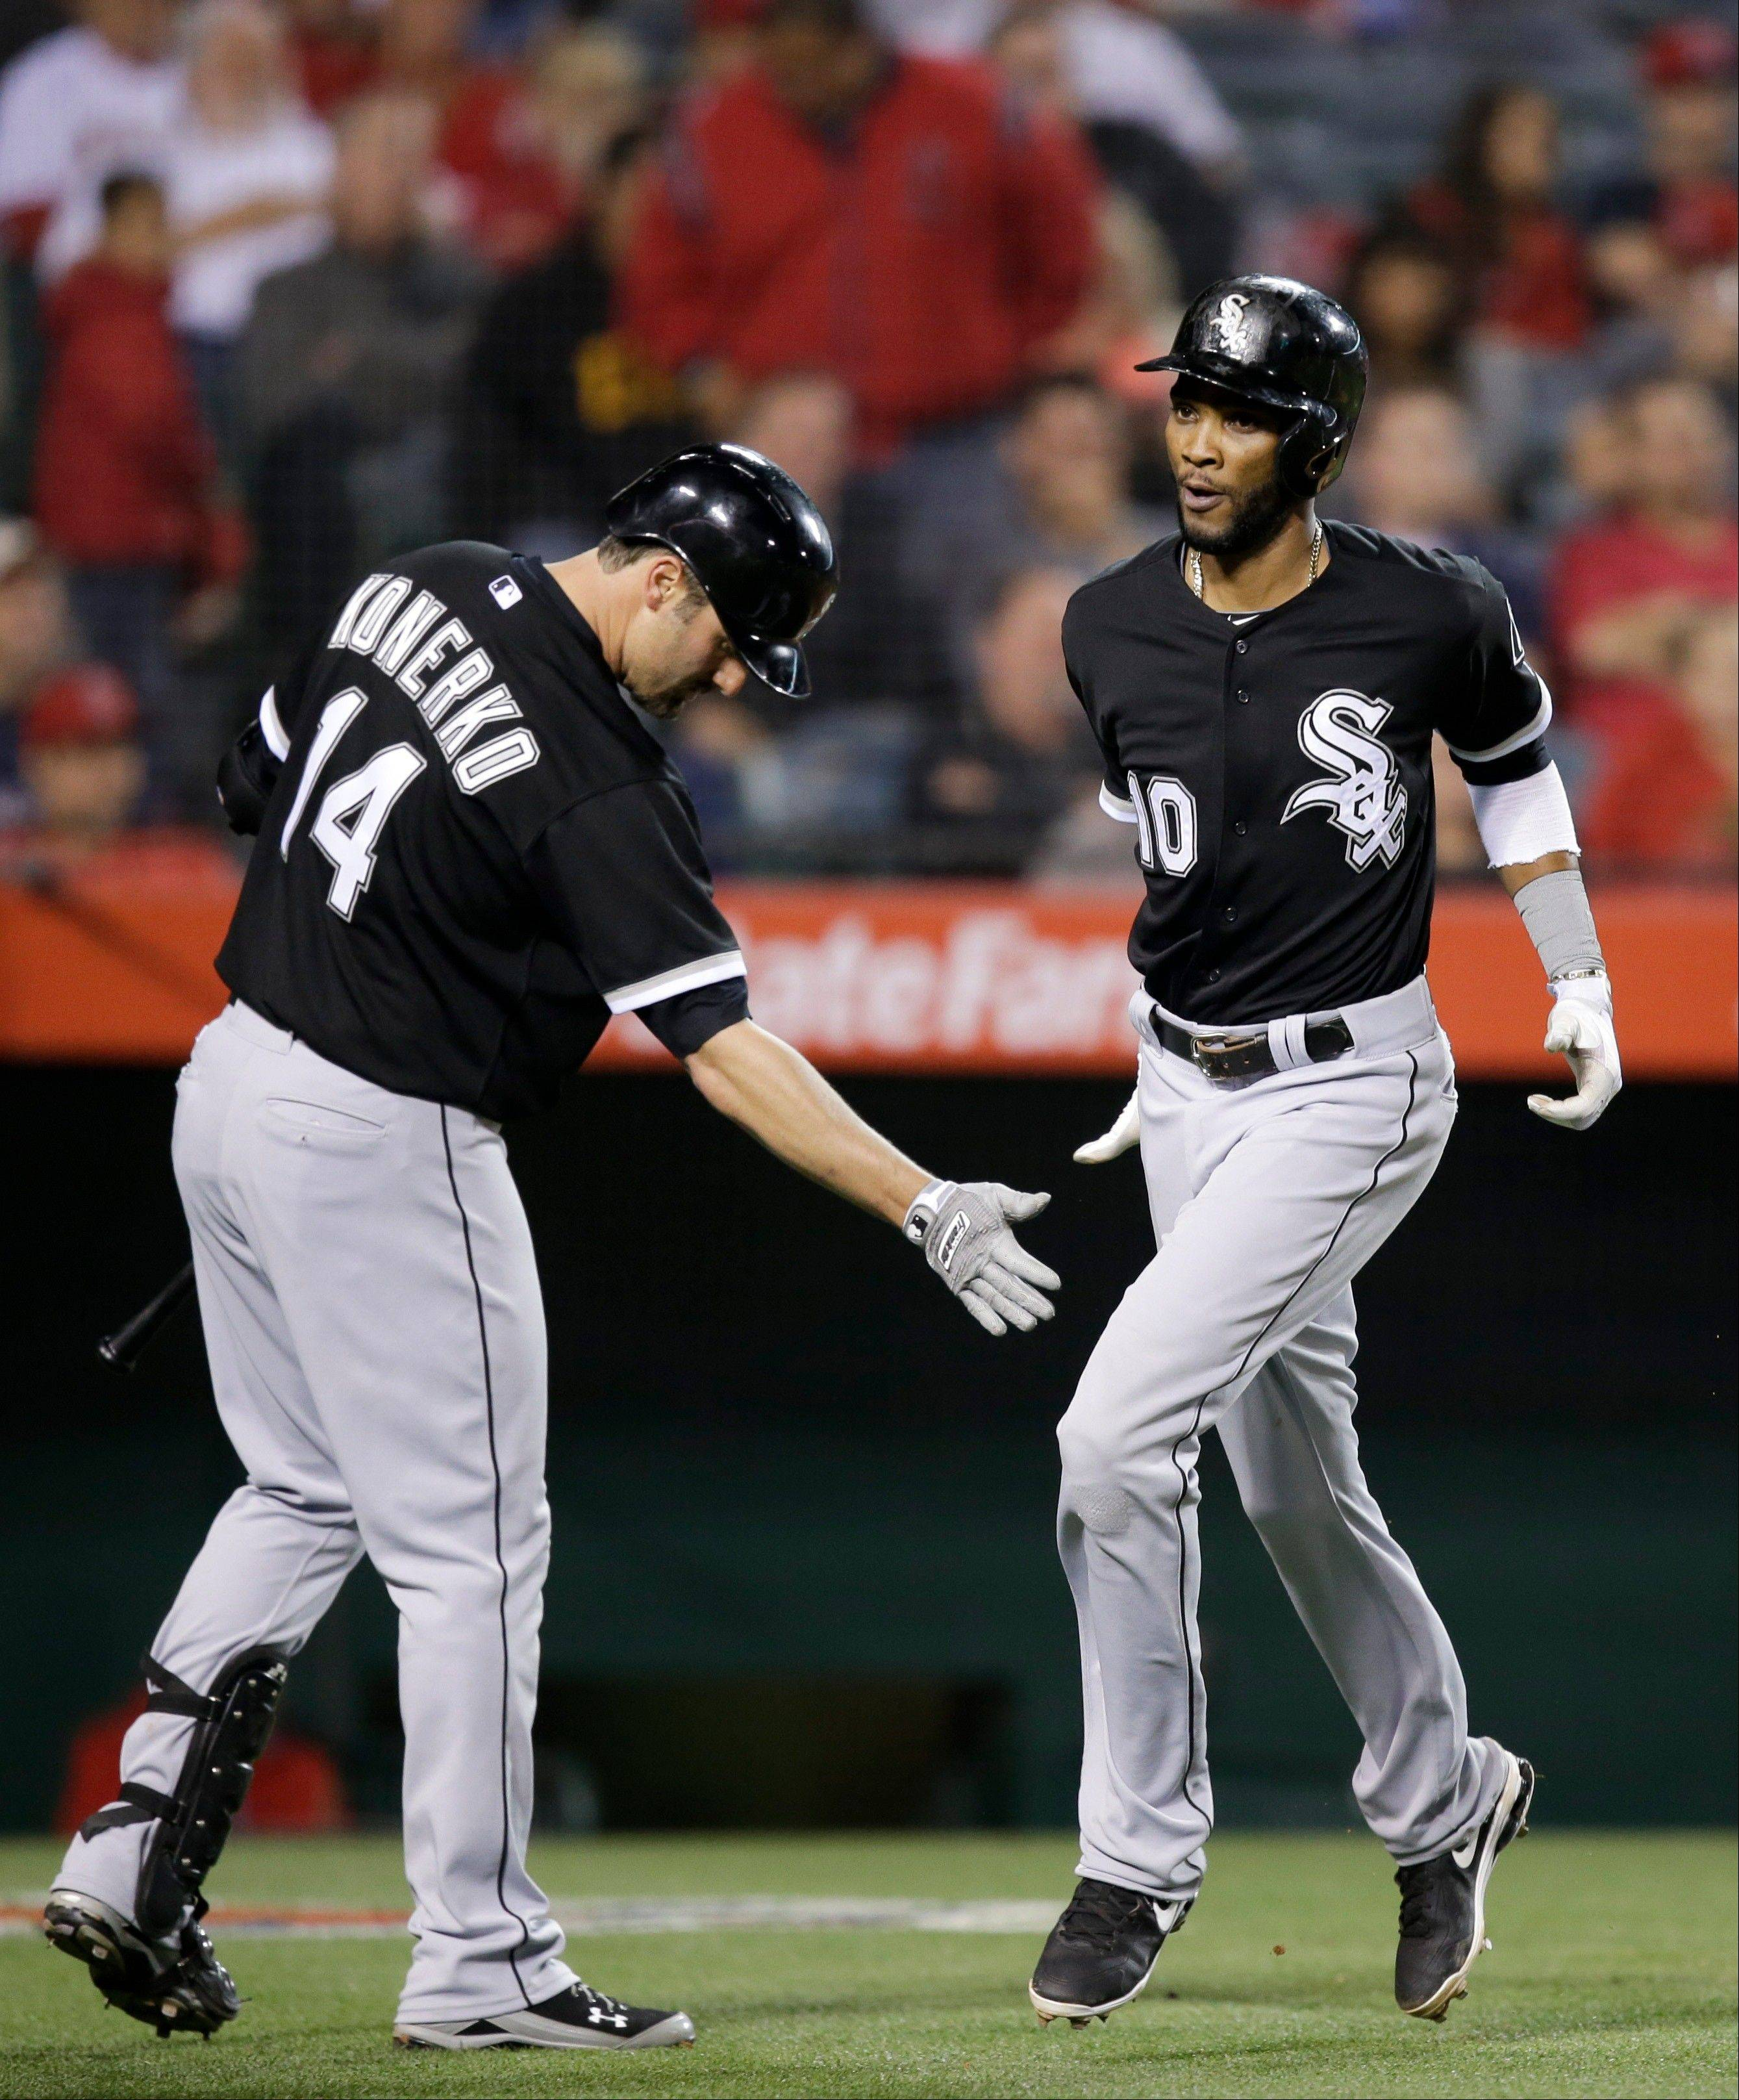 Chicago White Sox's Alexei Ramirez, right, is greeted by Paul Konerko after he scored on a single by Adam Dunn during the eighth inning of a baseball game against the Los Angeles Angels in Anaheim, Calif., Thursday, May 16, 2013. (AP Photo/Jae C. Hong)